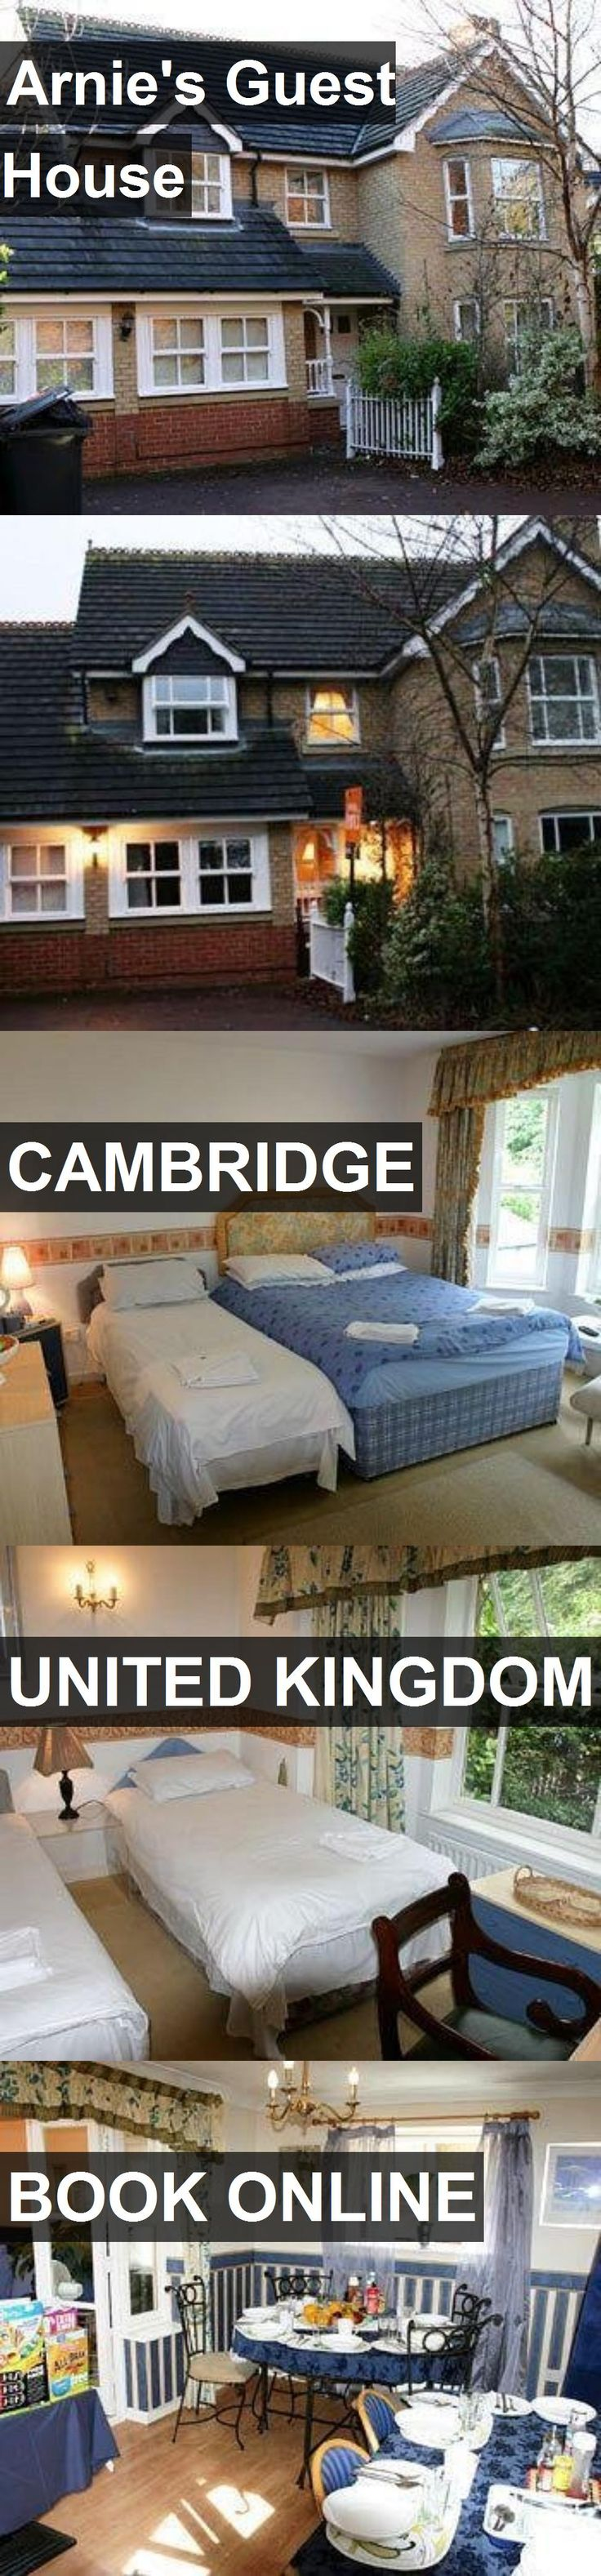 Arnie's Guest House in Cambridge, United Kingdom. For more information, photos, reviews and best prices please follow the link. #UnitedKingdom #Cambridge #travel #vacation #guesthouse